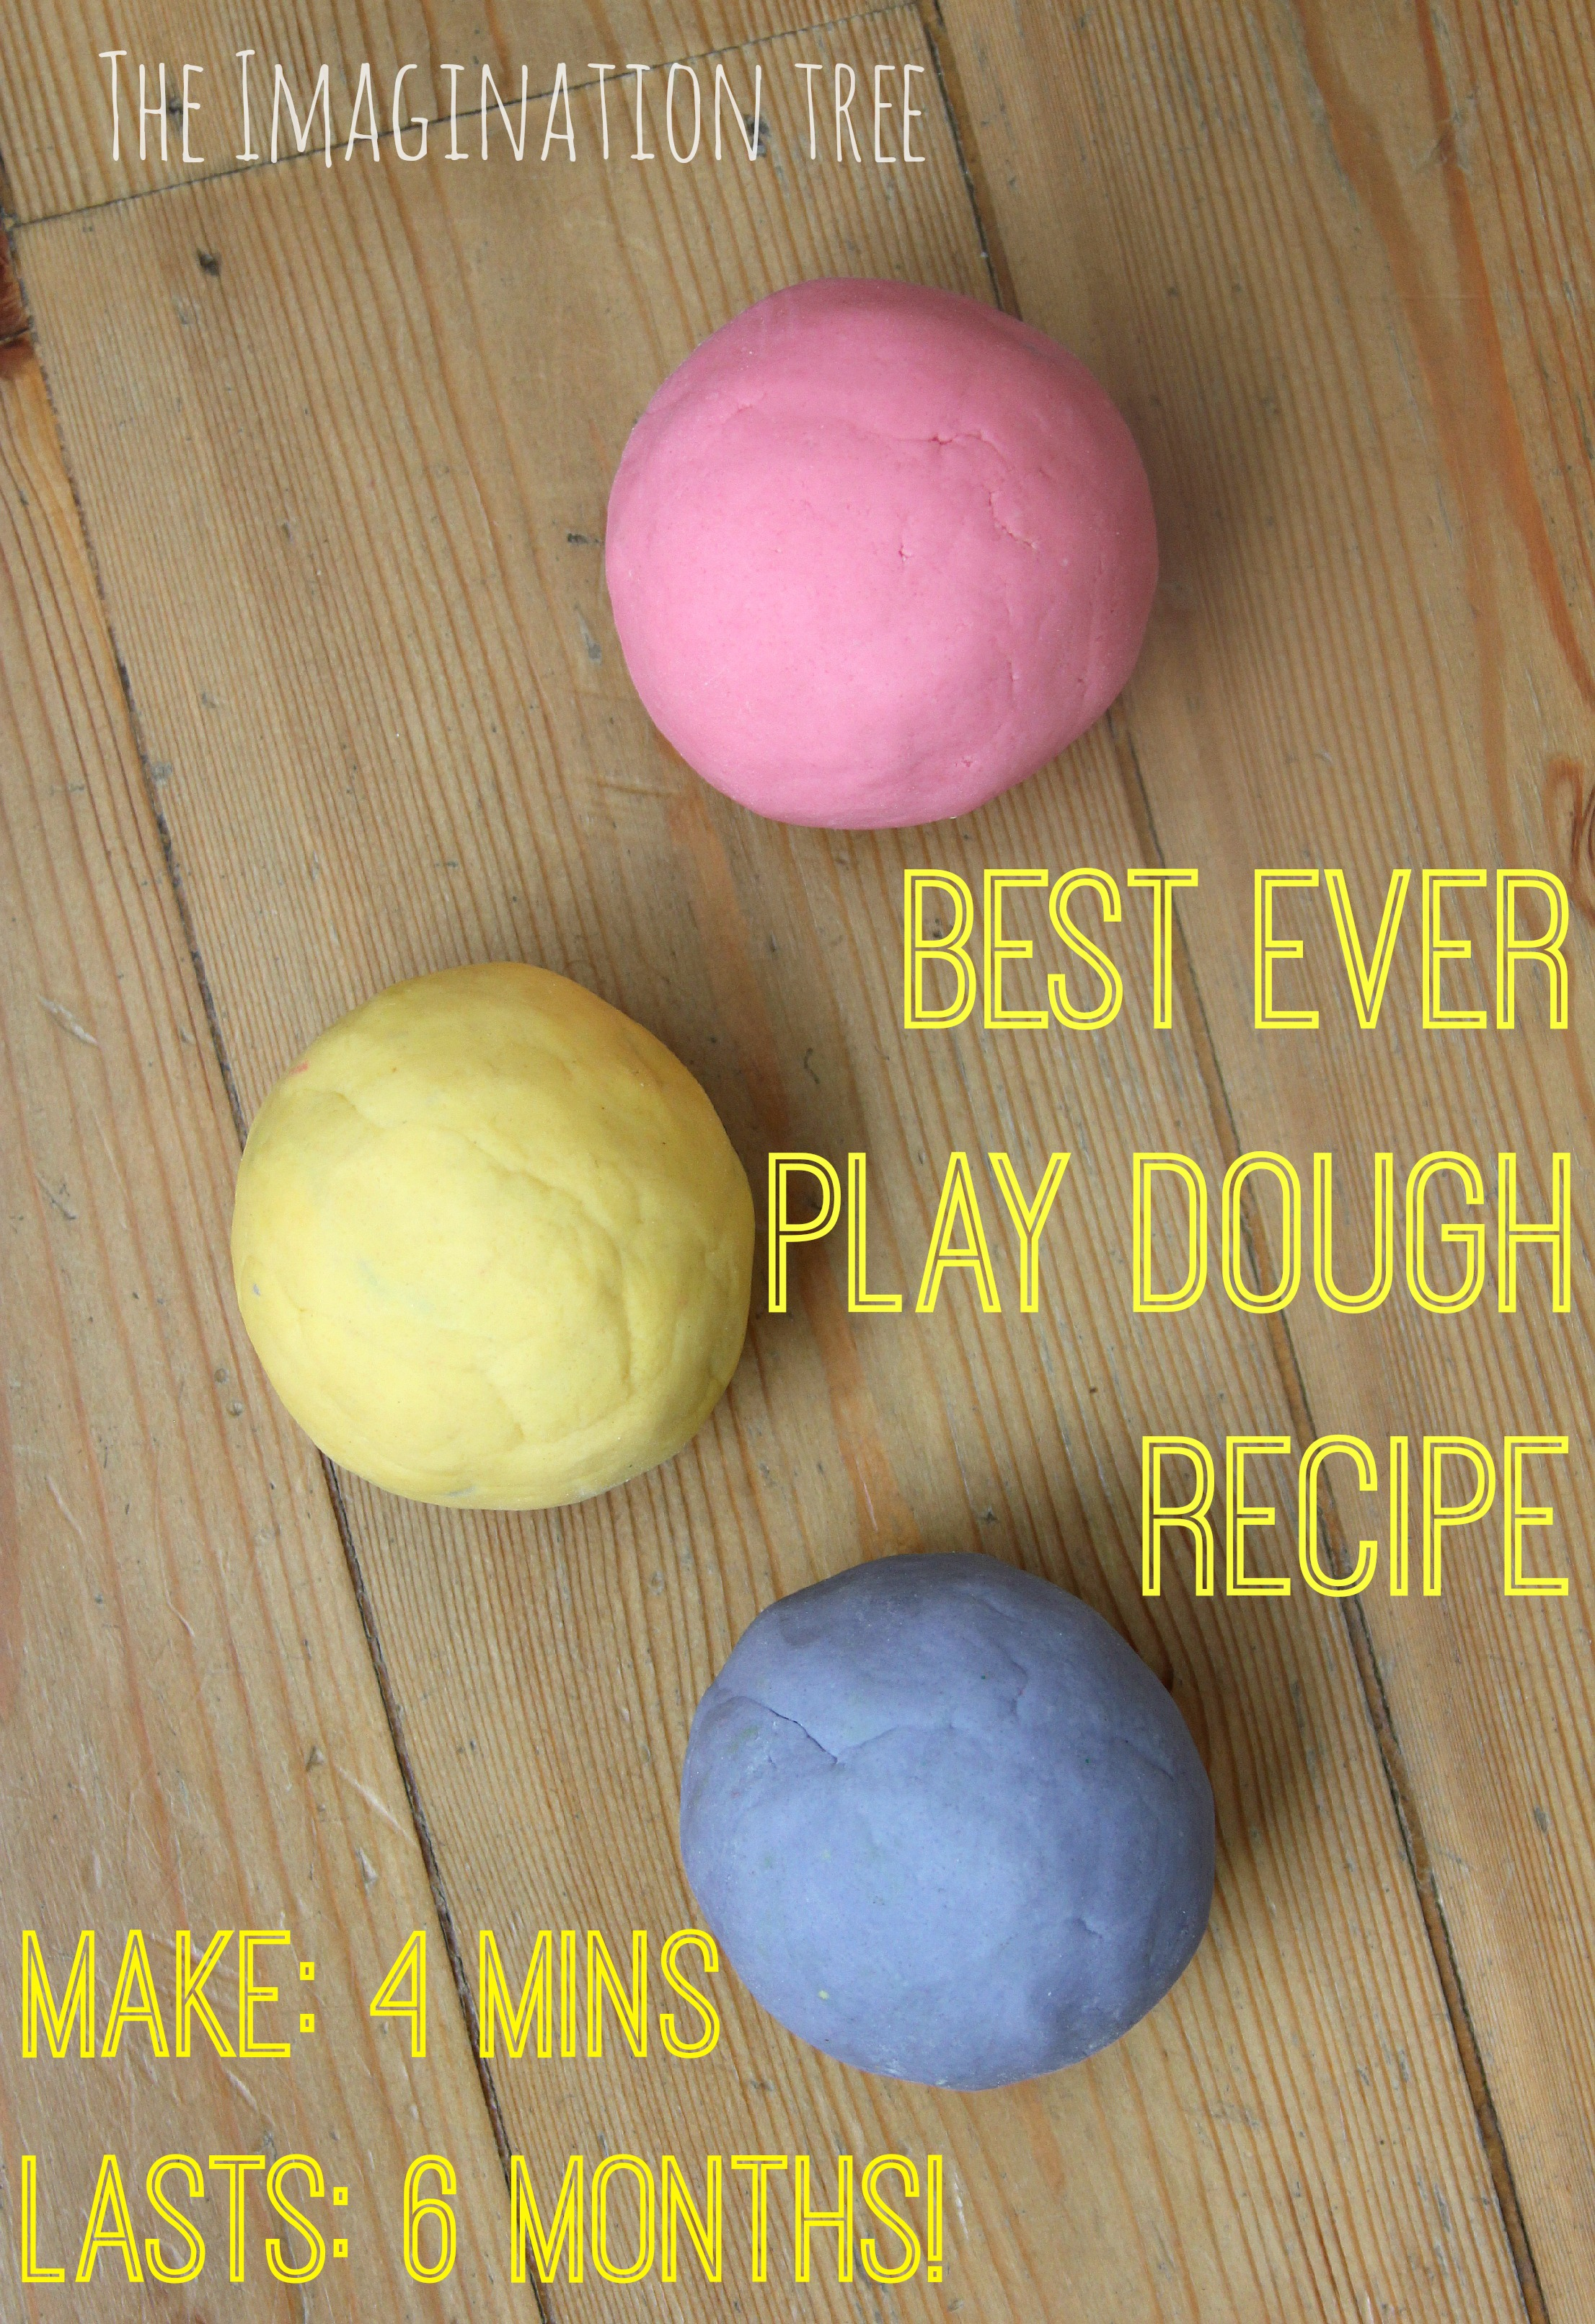 Best Ever No-Cook Play Dough Recipe! - The Imagination Tree